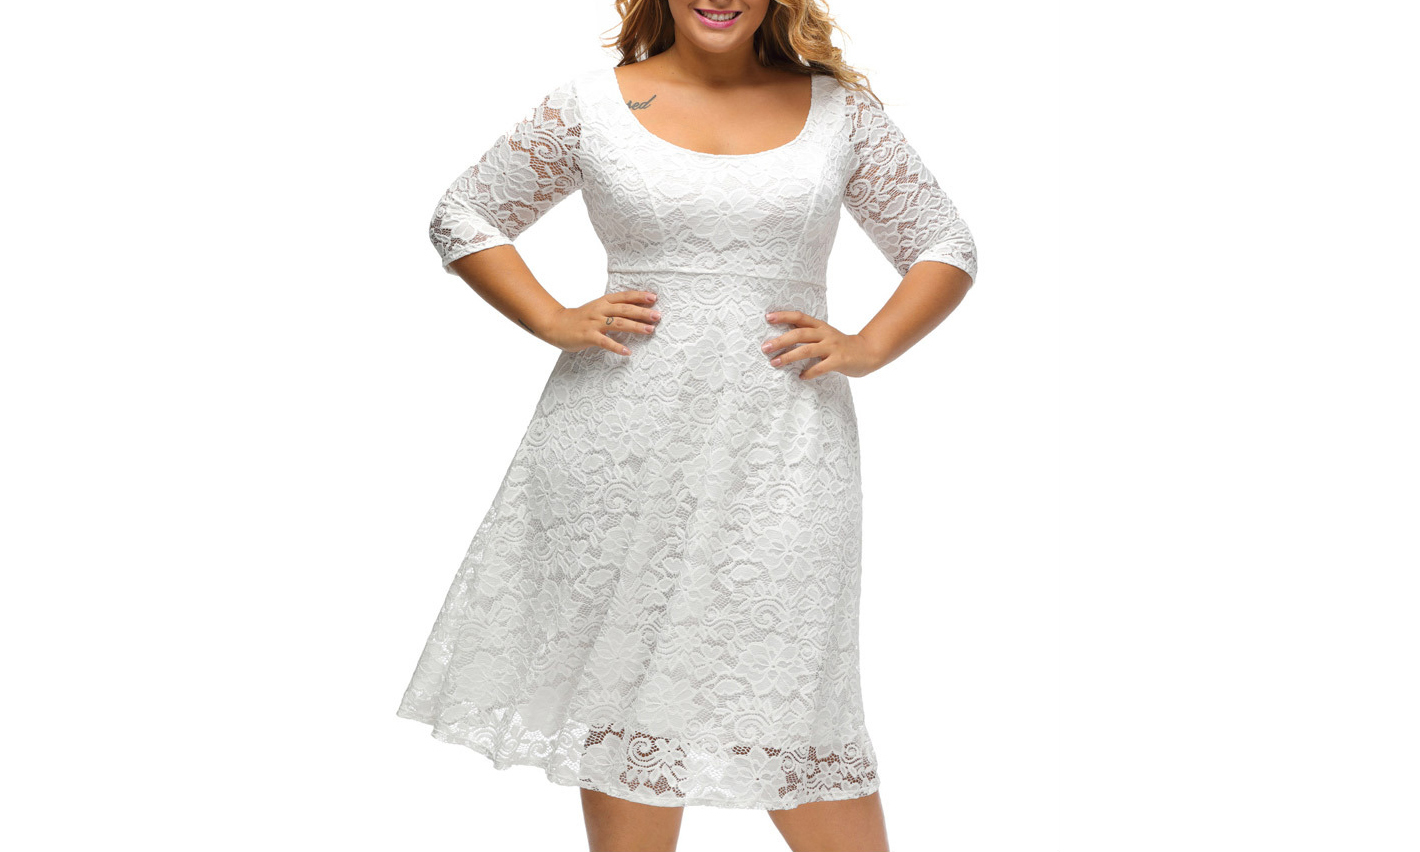 Primary image for Women's Floral Lace 3/4 Sleeve Flare A-line Plus Size Midi Dress